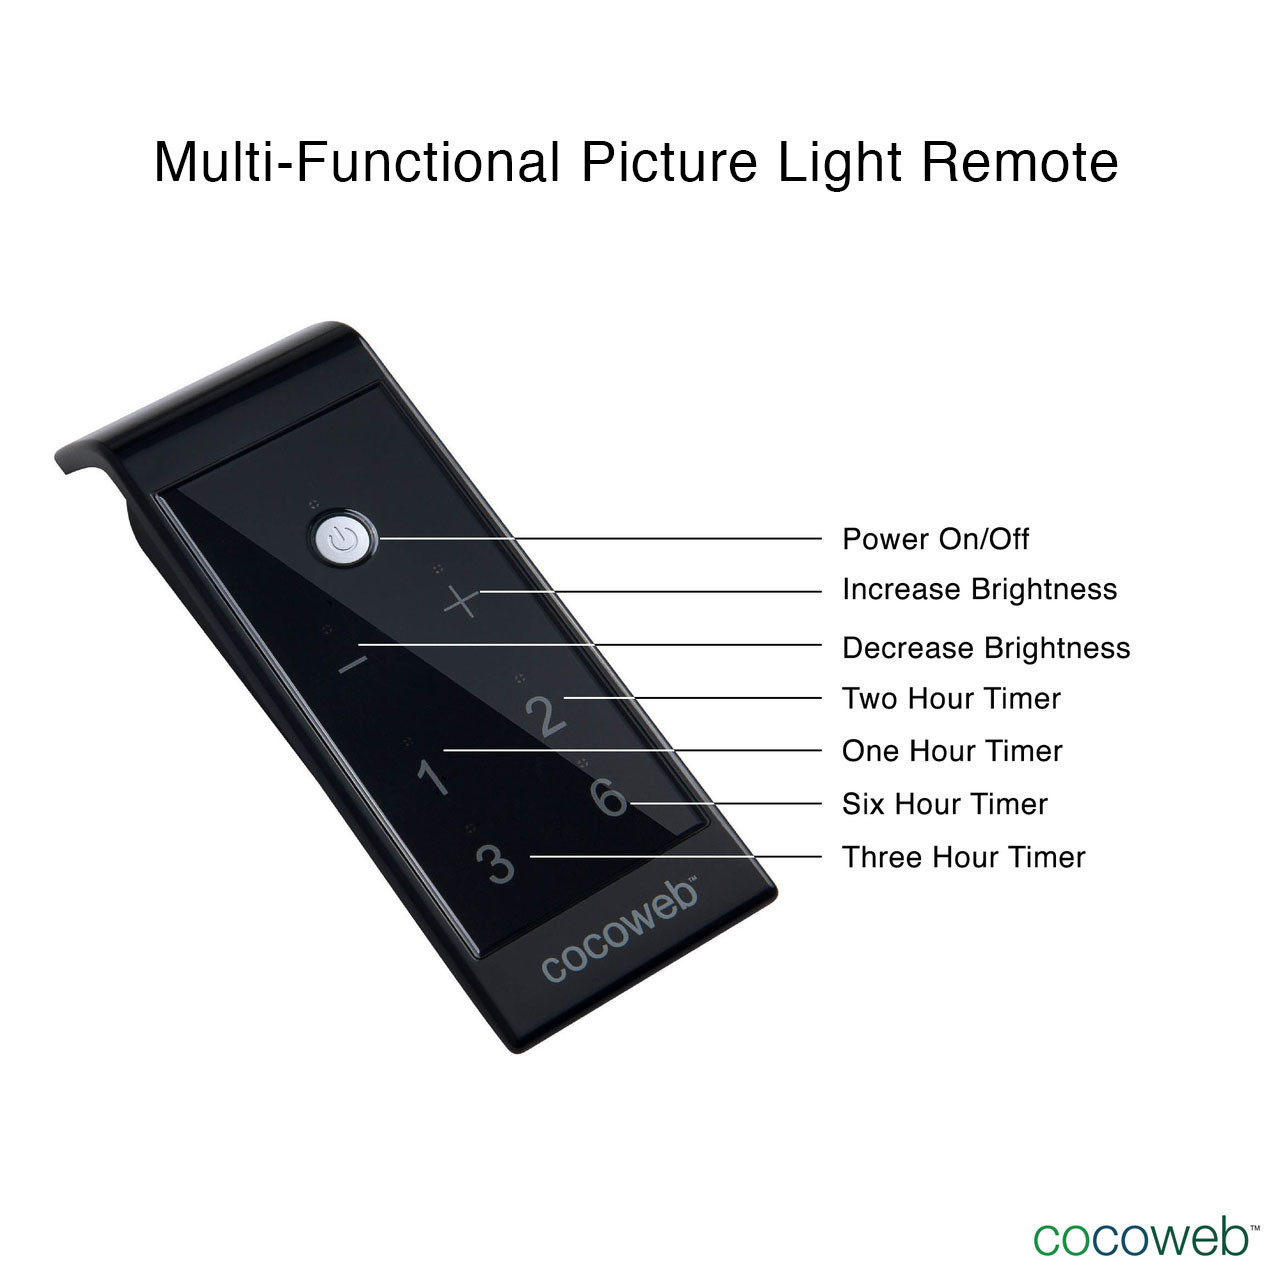 Customizable Classic Led Picture Light Cocoweb Inc Three Hour Timer Multi Functional Remote